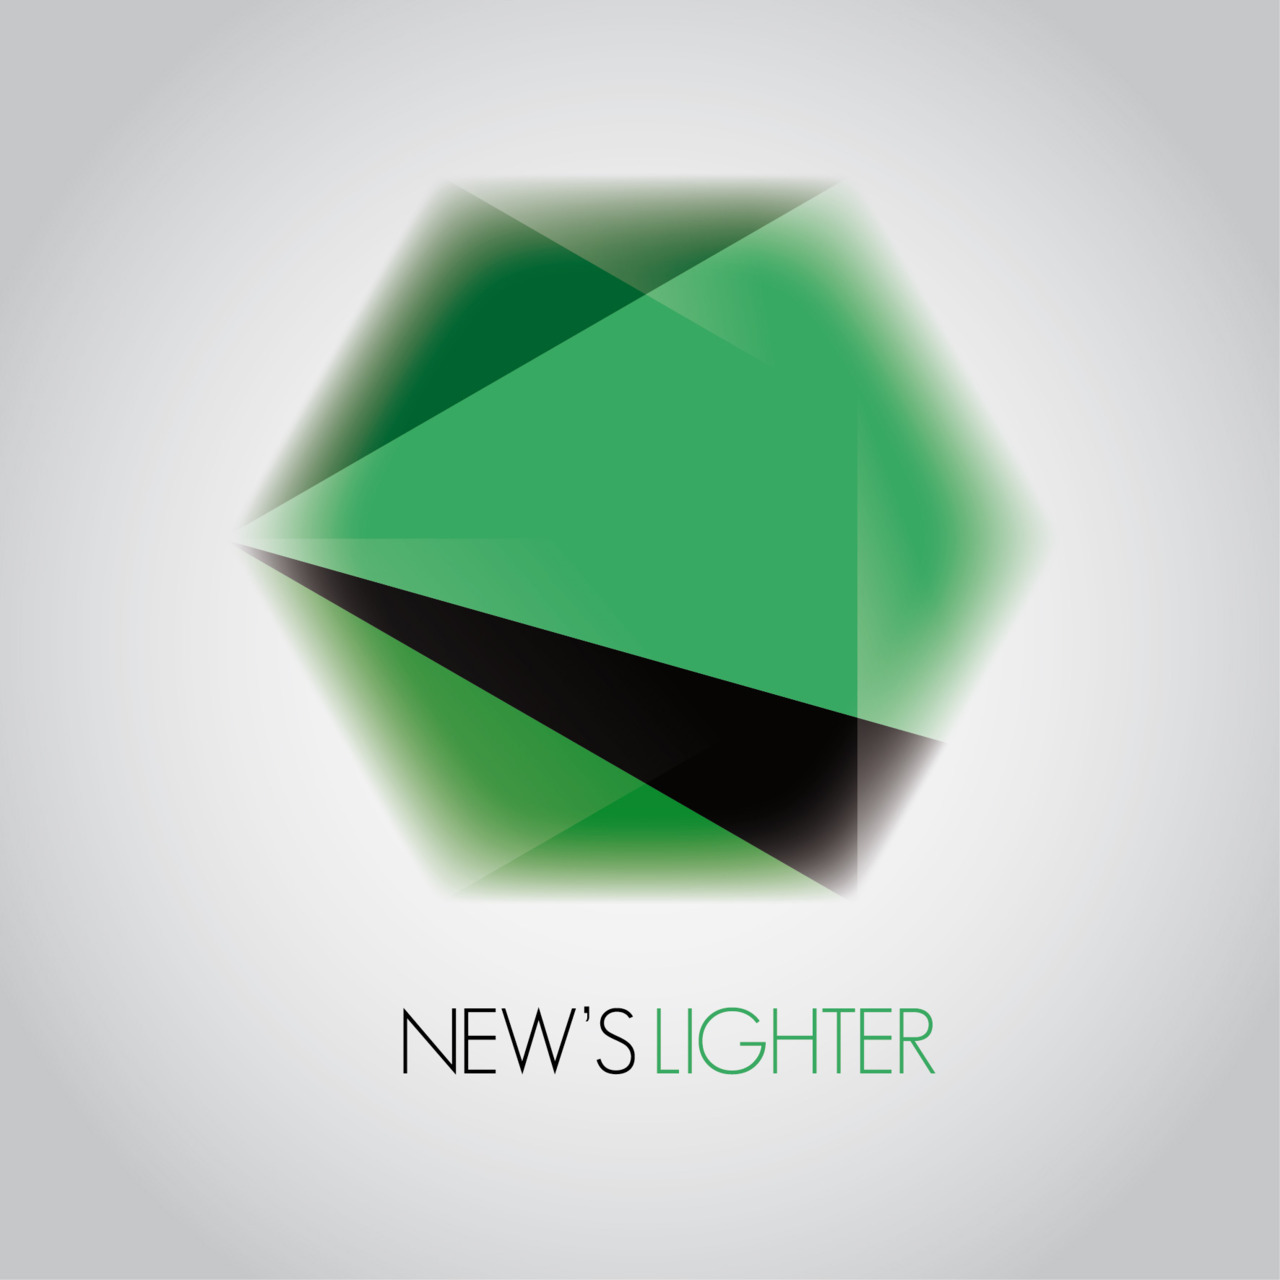 LOGO/ NEW'S LIGHTER. '11